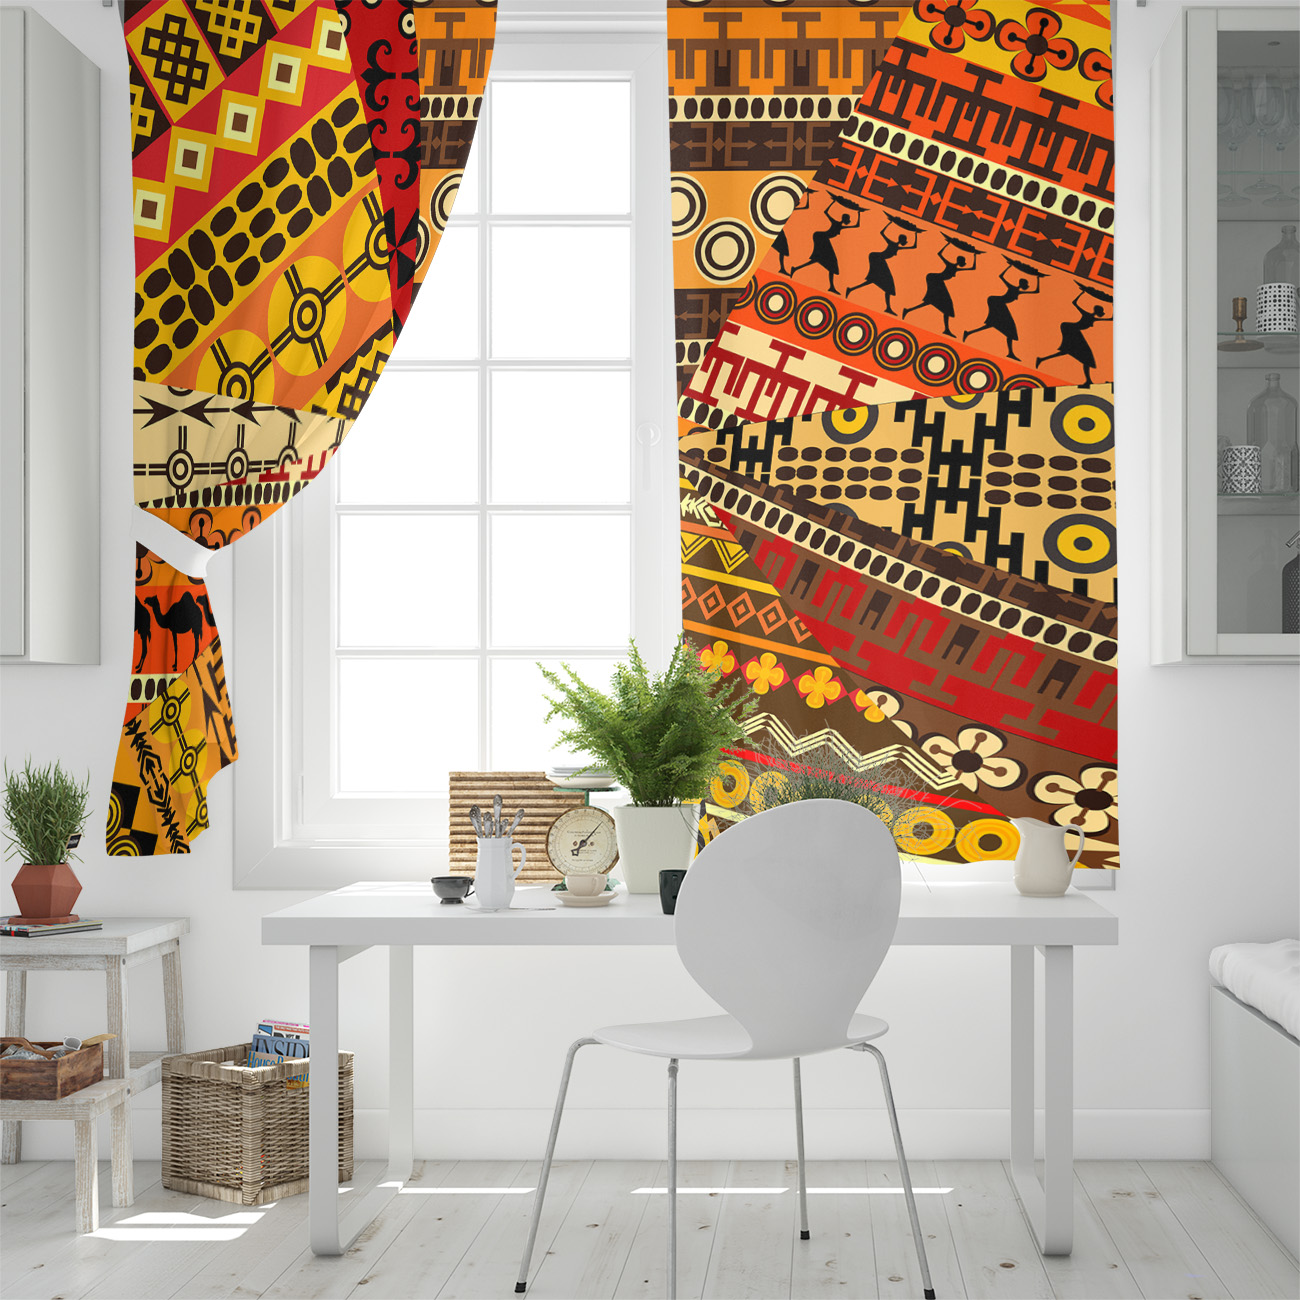 South African Traditional Ethnic Style Curtains Kitchen Decor Items Window Curtains For Living Room Bedroom Curtain Panel Curtains Aliexpress